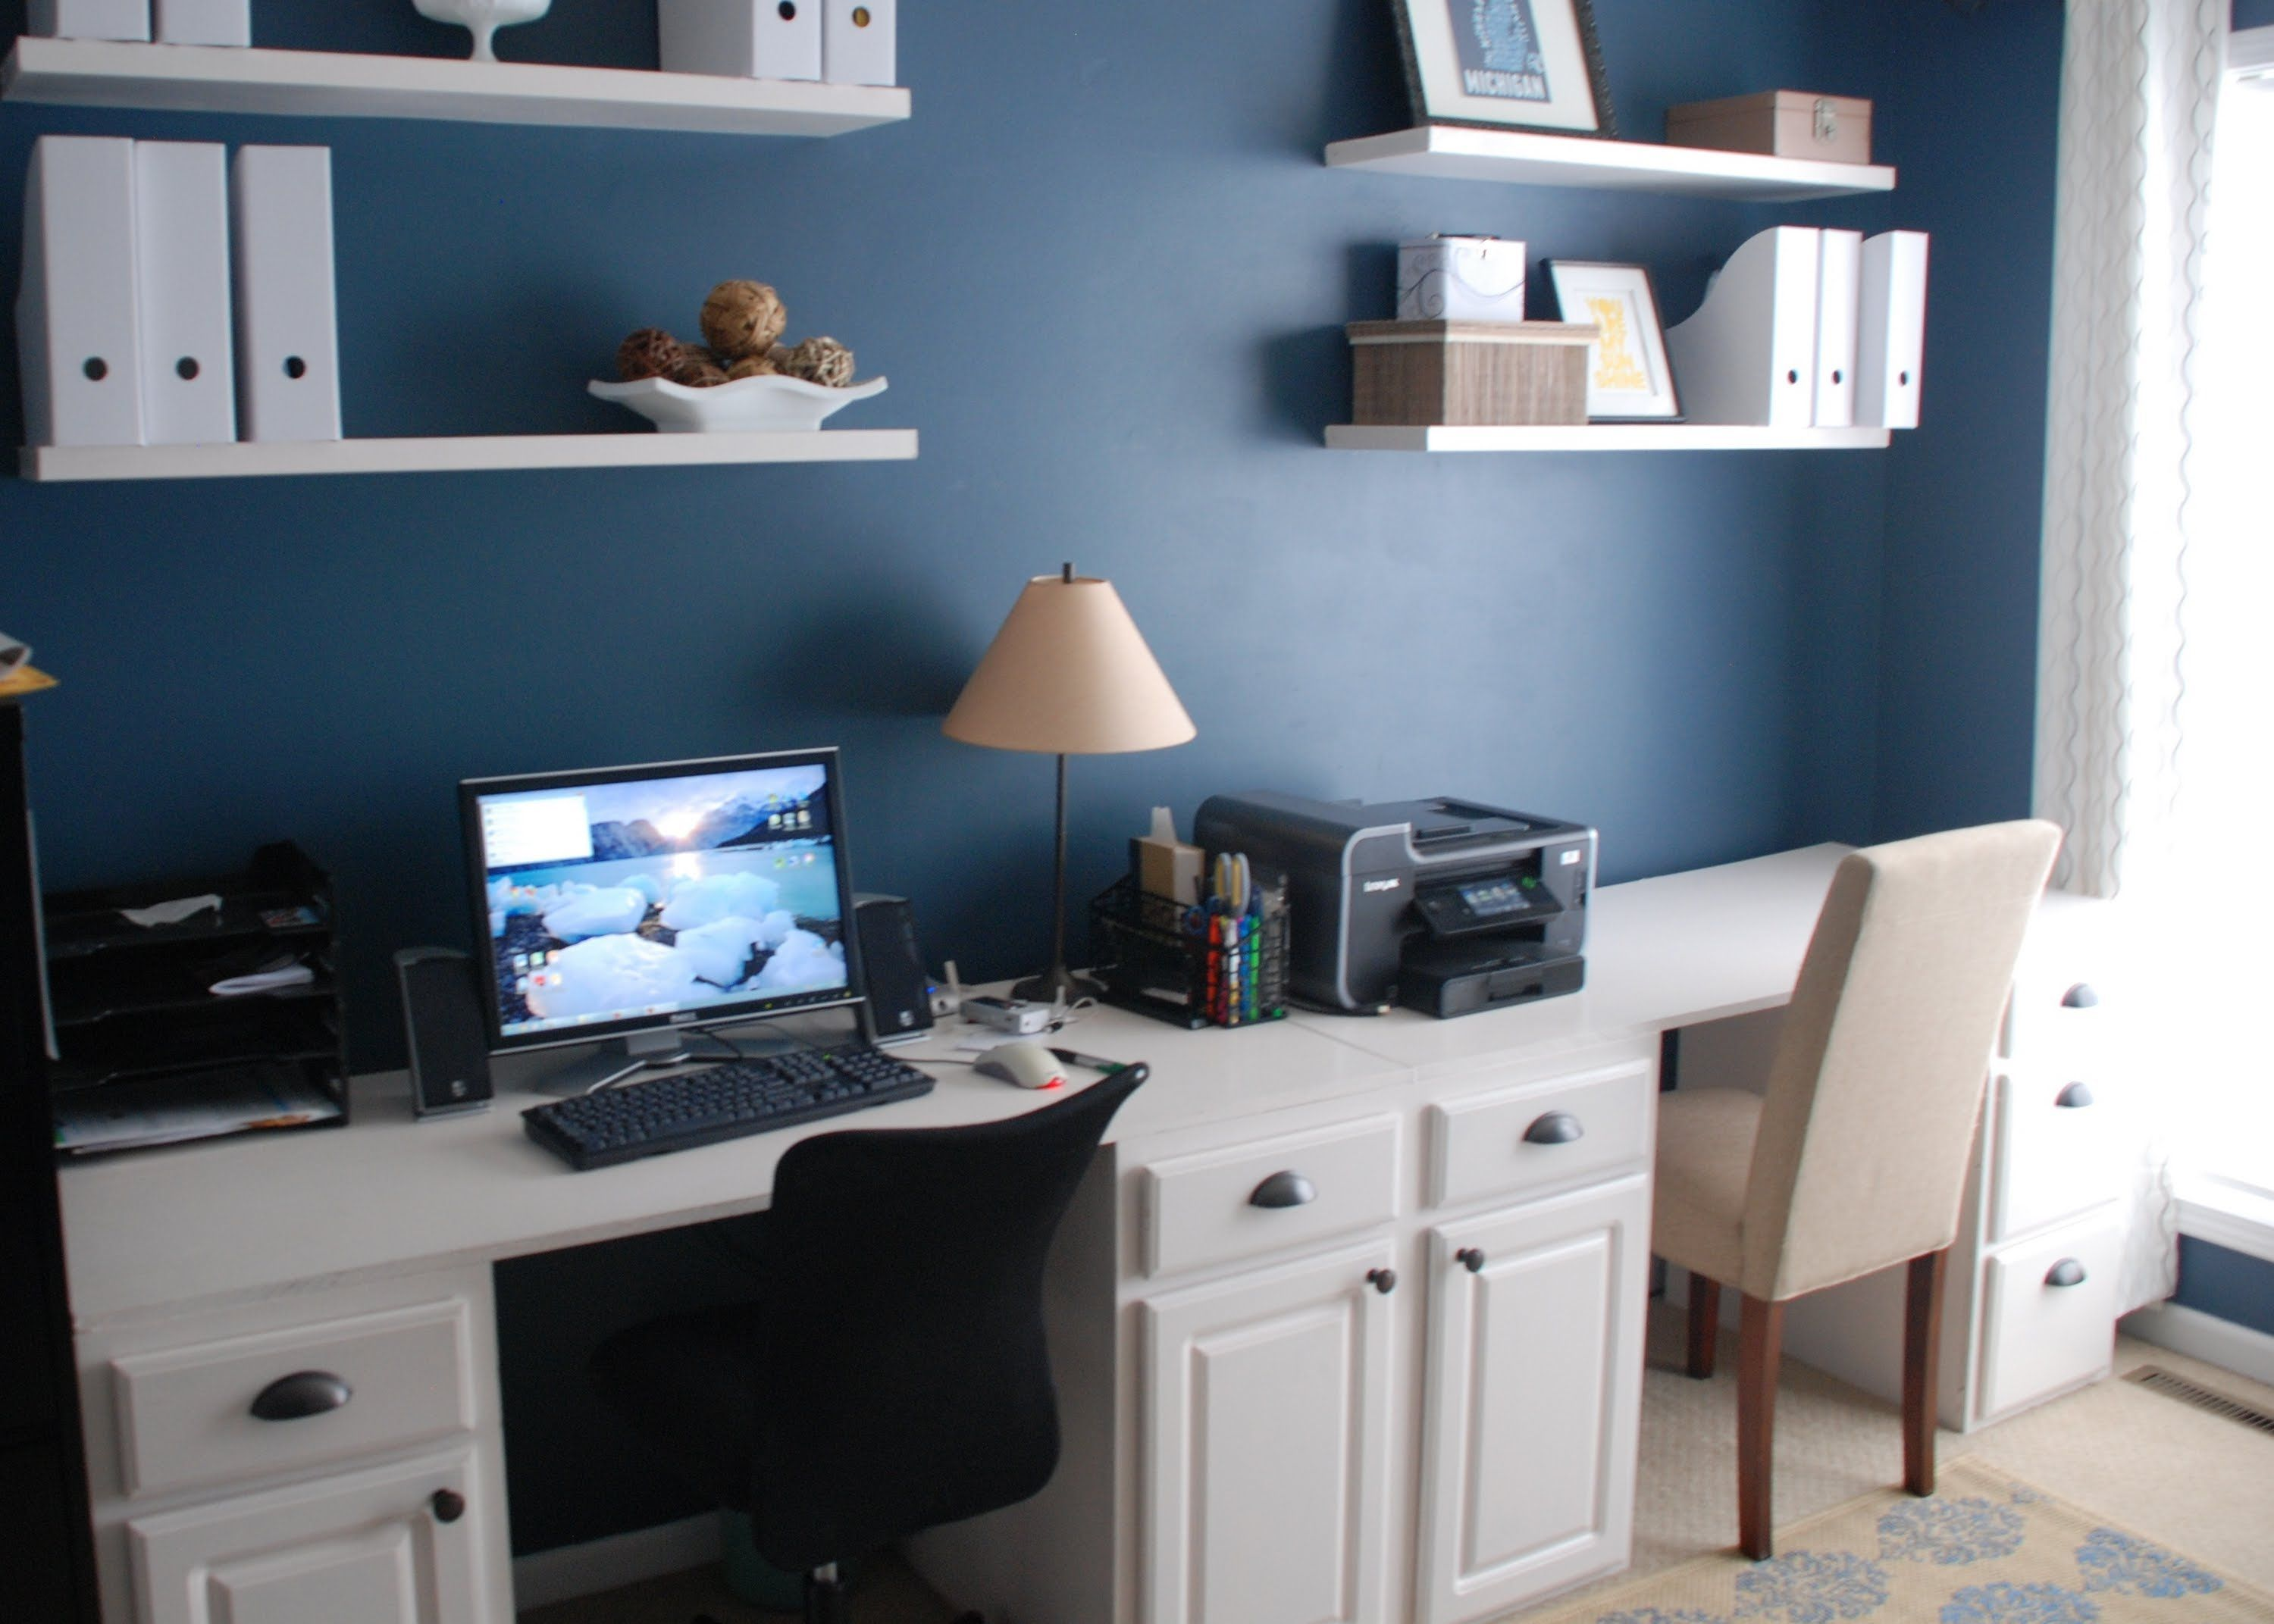 work station kitchen modern faucets how to make a desk out of cabinets